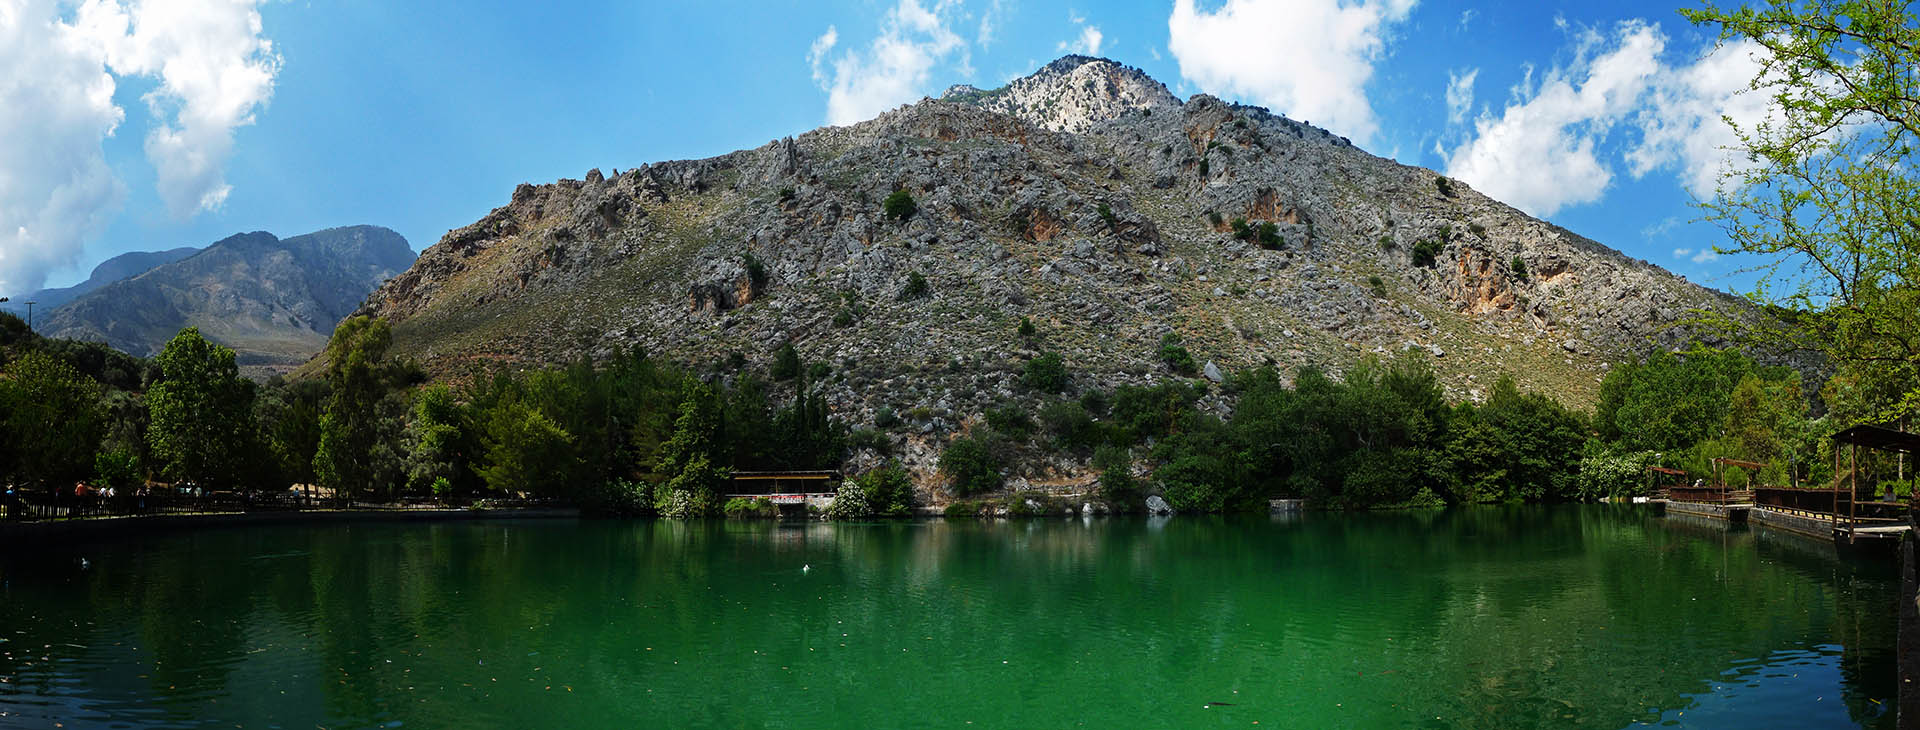 Zaros lake, Heraklion